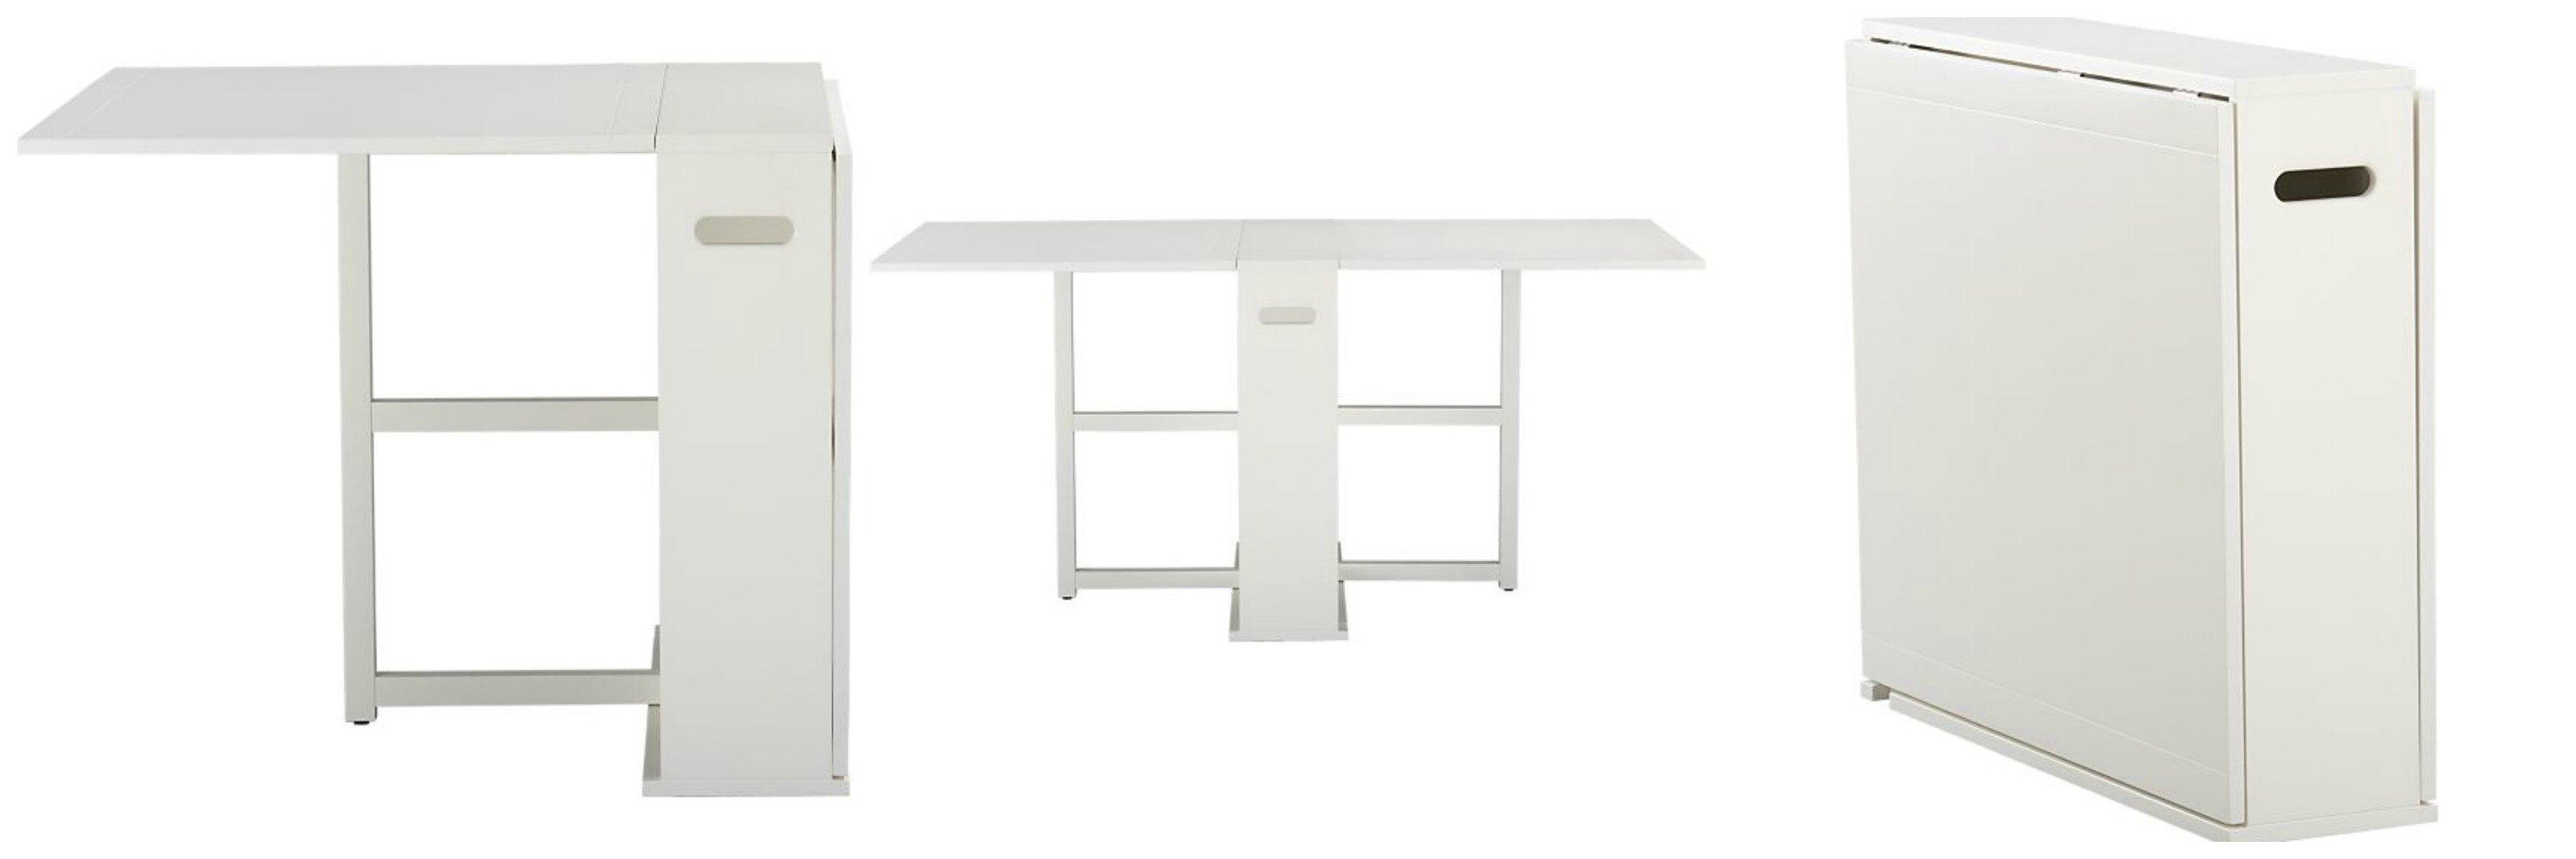 Crate and barrel span gateleg dining table decor look alikes - Gateleg table with chair storage ...